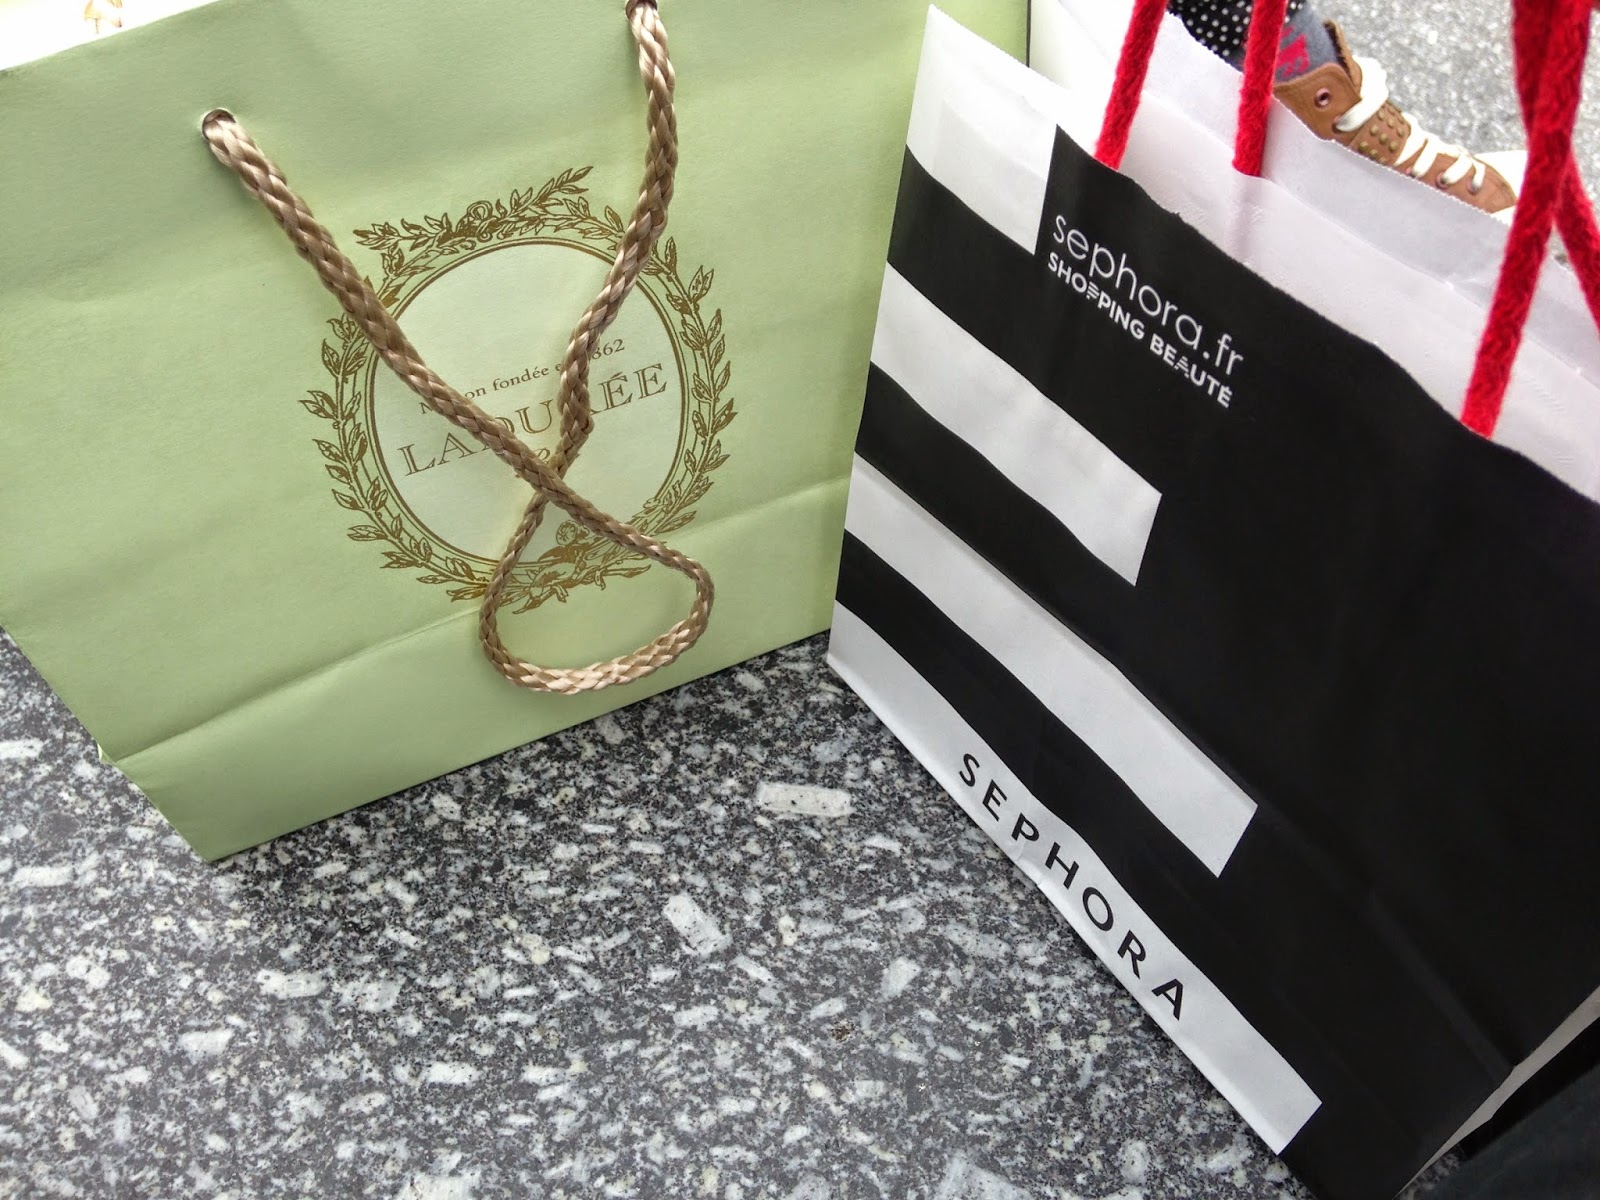 A picture of a Laudree and a Sephora Shopping bag